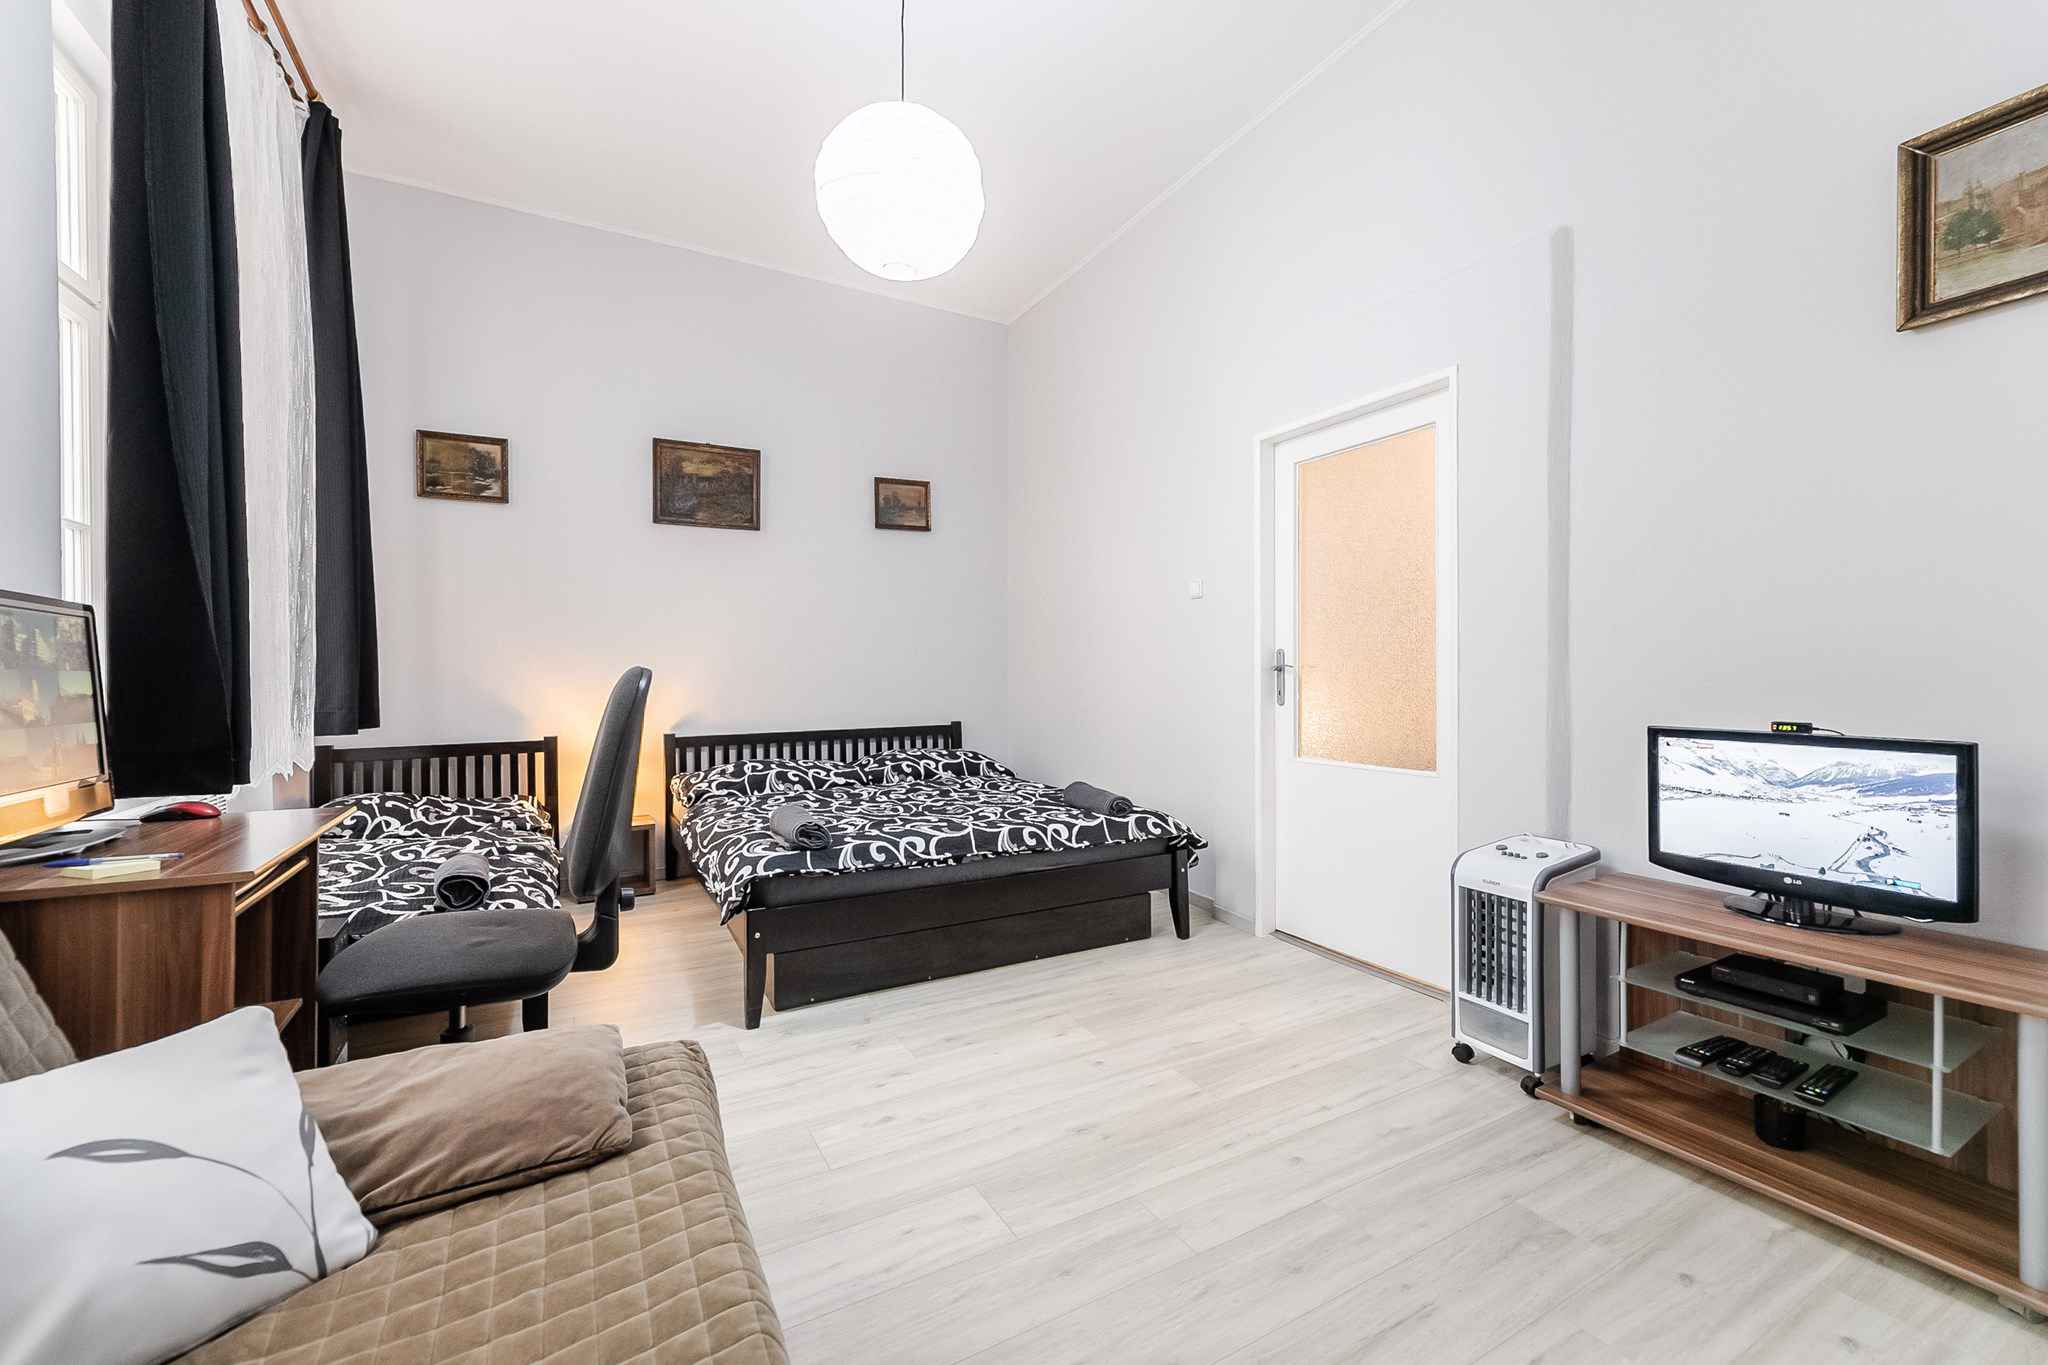 Holiday Houses Apartments In Prague City Czech Republic Holiday Home